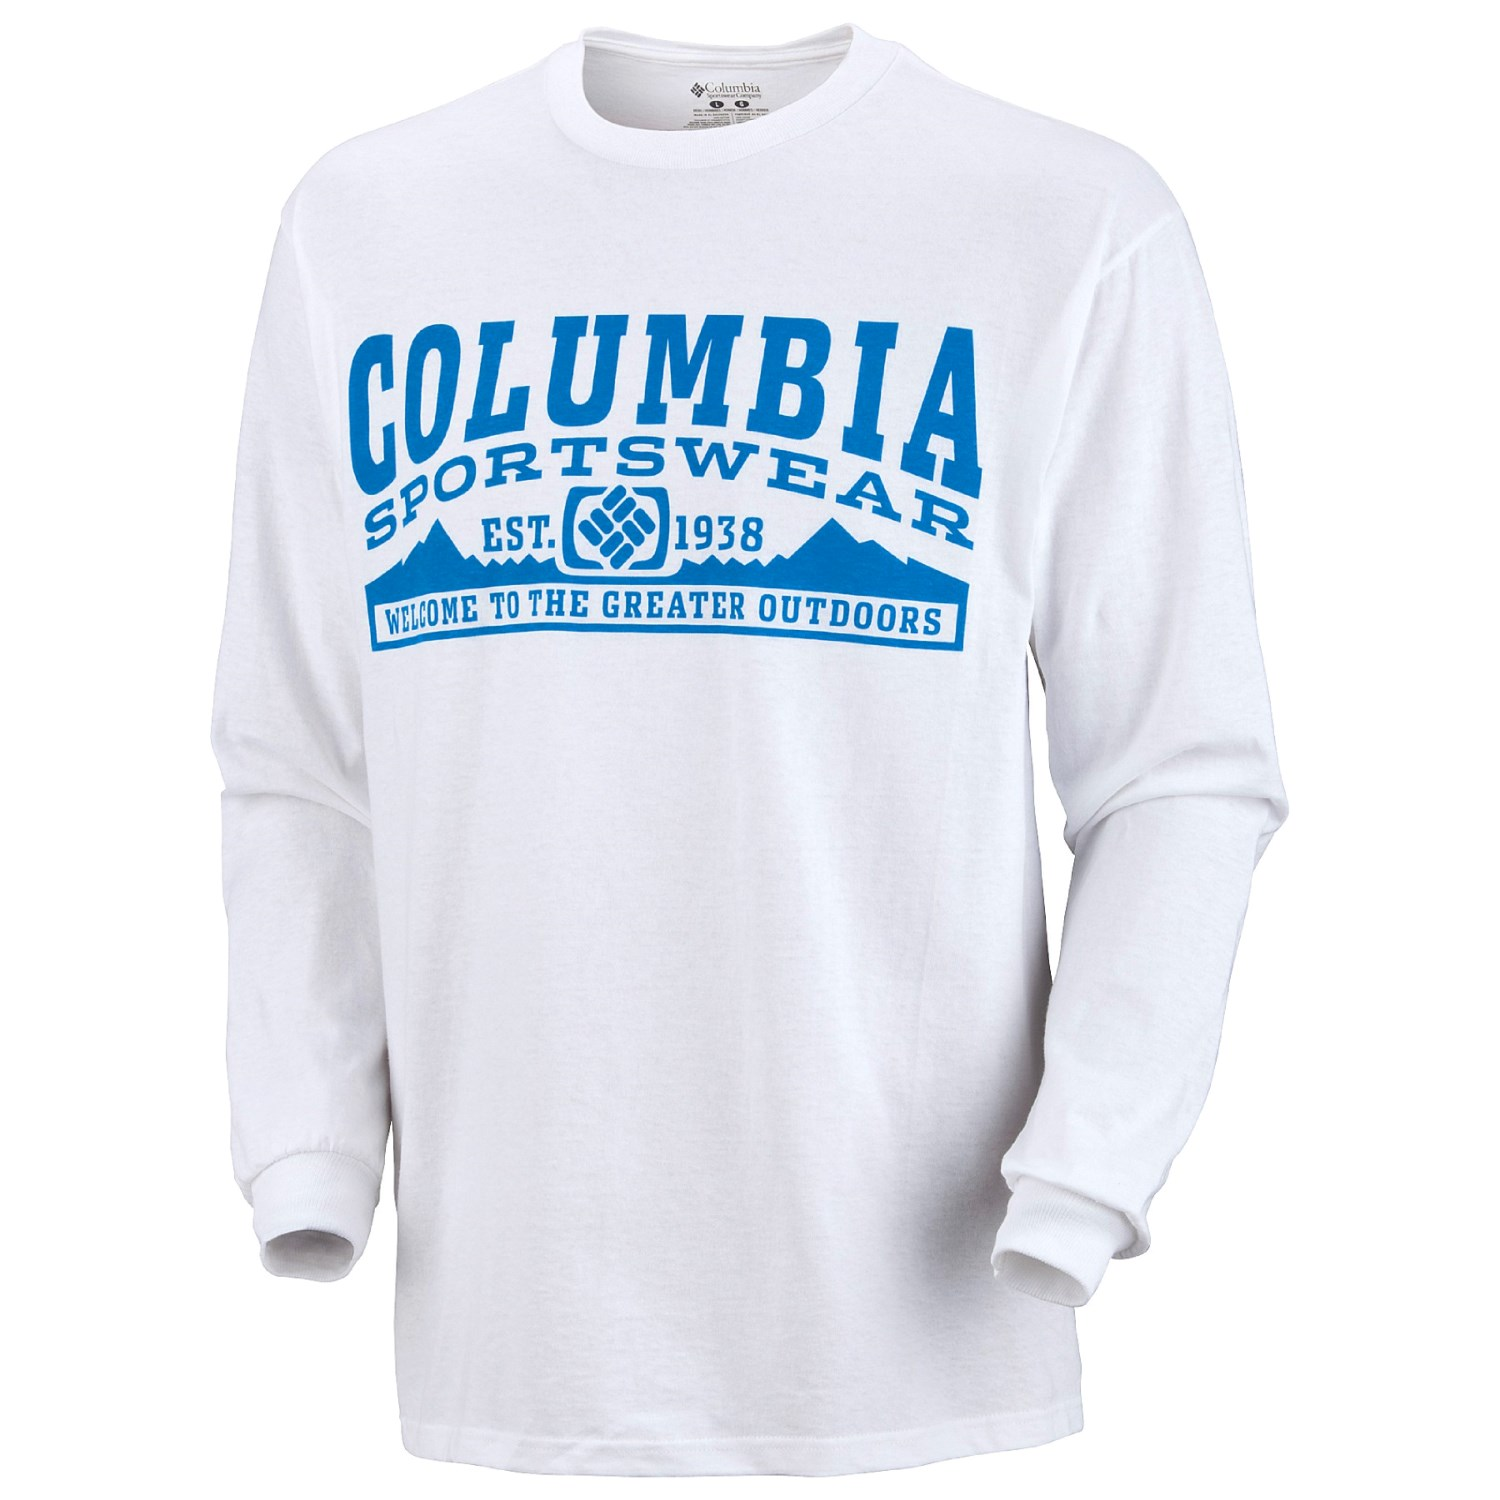 Womens Columbia Fishing Shirts